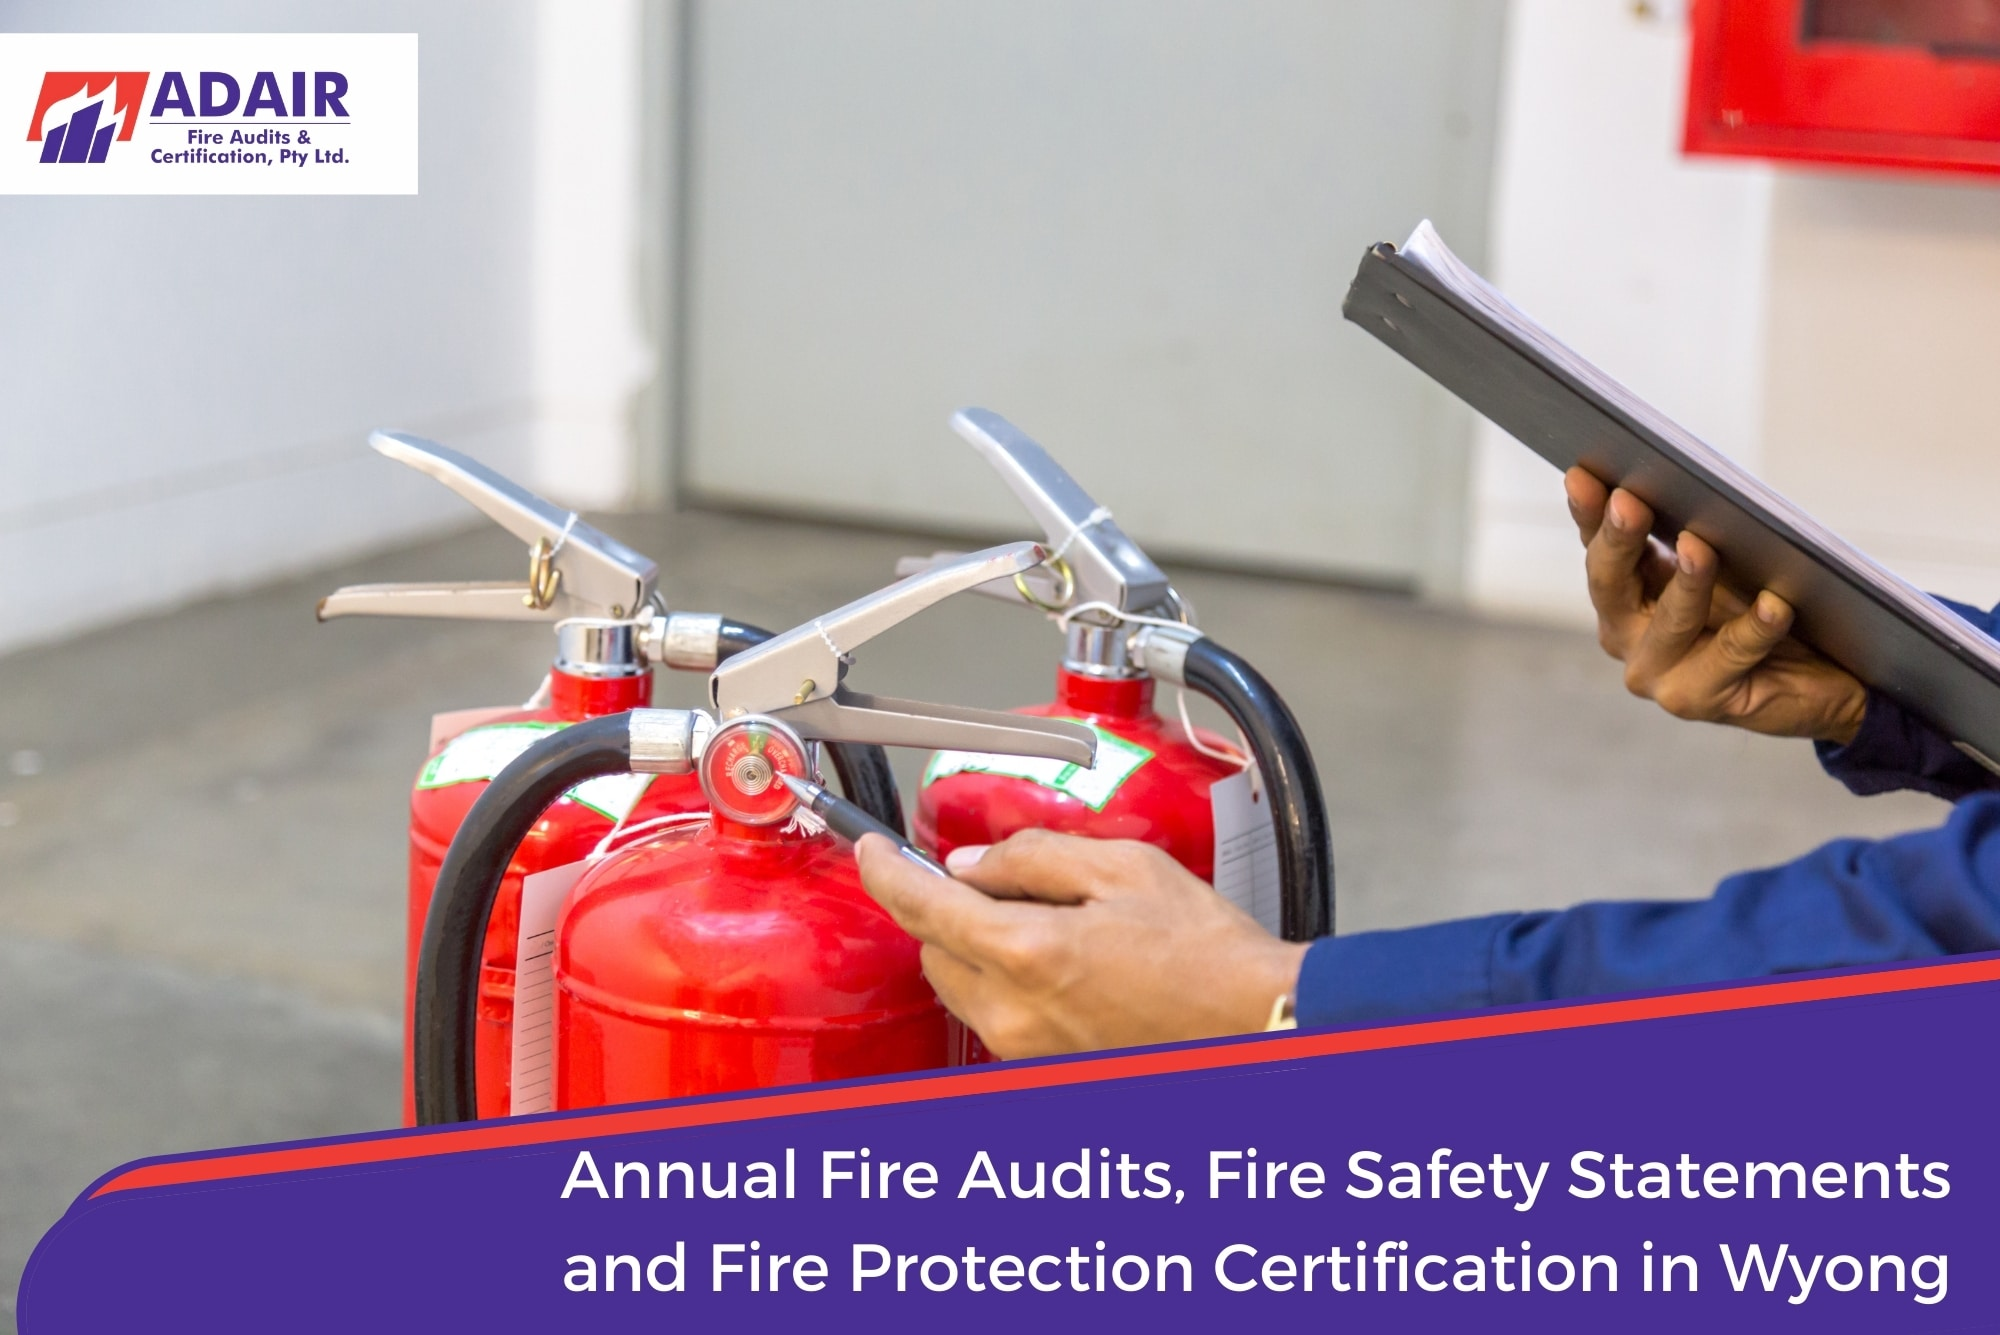 Annual Fire Audits, Fire Safety Statements and Fire Protection Certification in Wyong